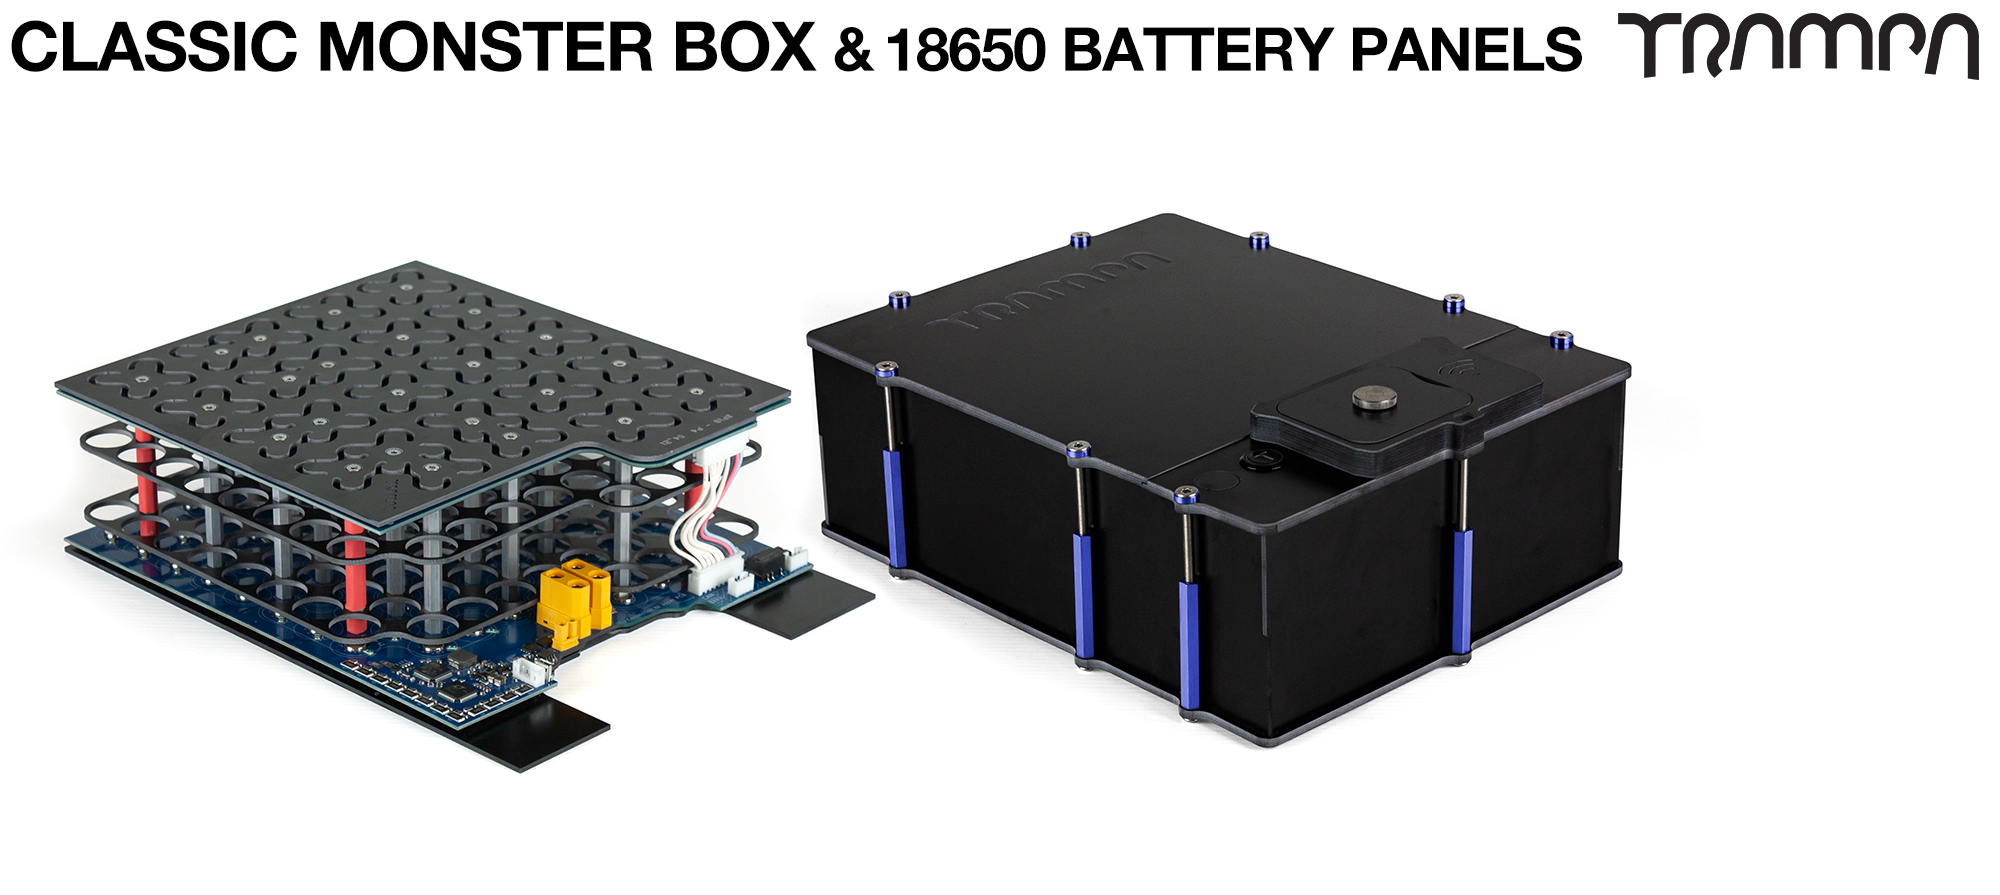 MONSTER BOX MkIV fits 84x 18650 cells & has space for 2x VESC 6 MkIV. Its specifically made to work in conjunction with TRAMPA's Electric Decks but can be adapted to fit anything